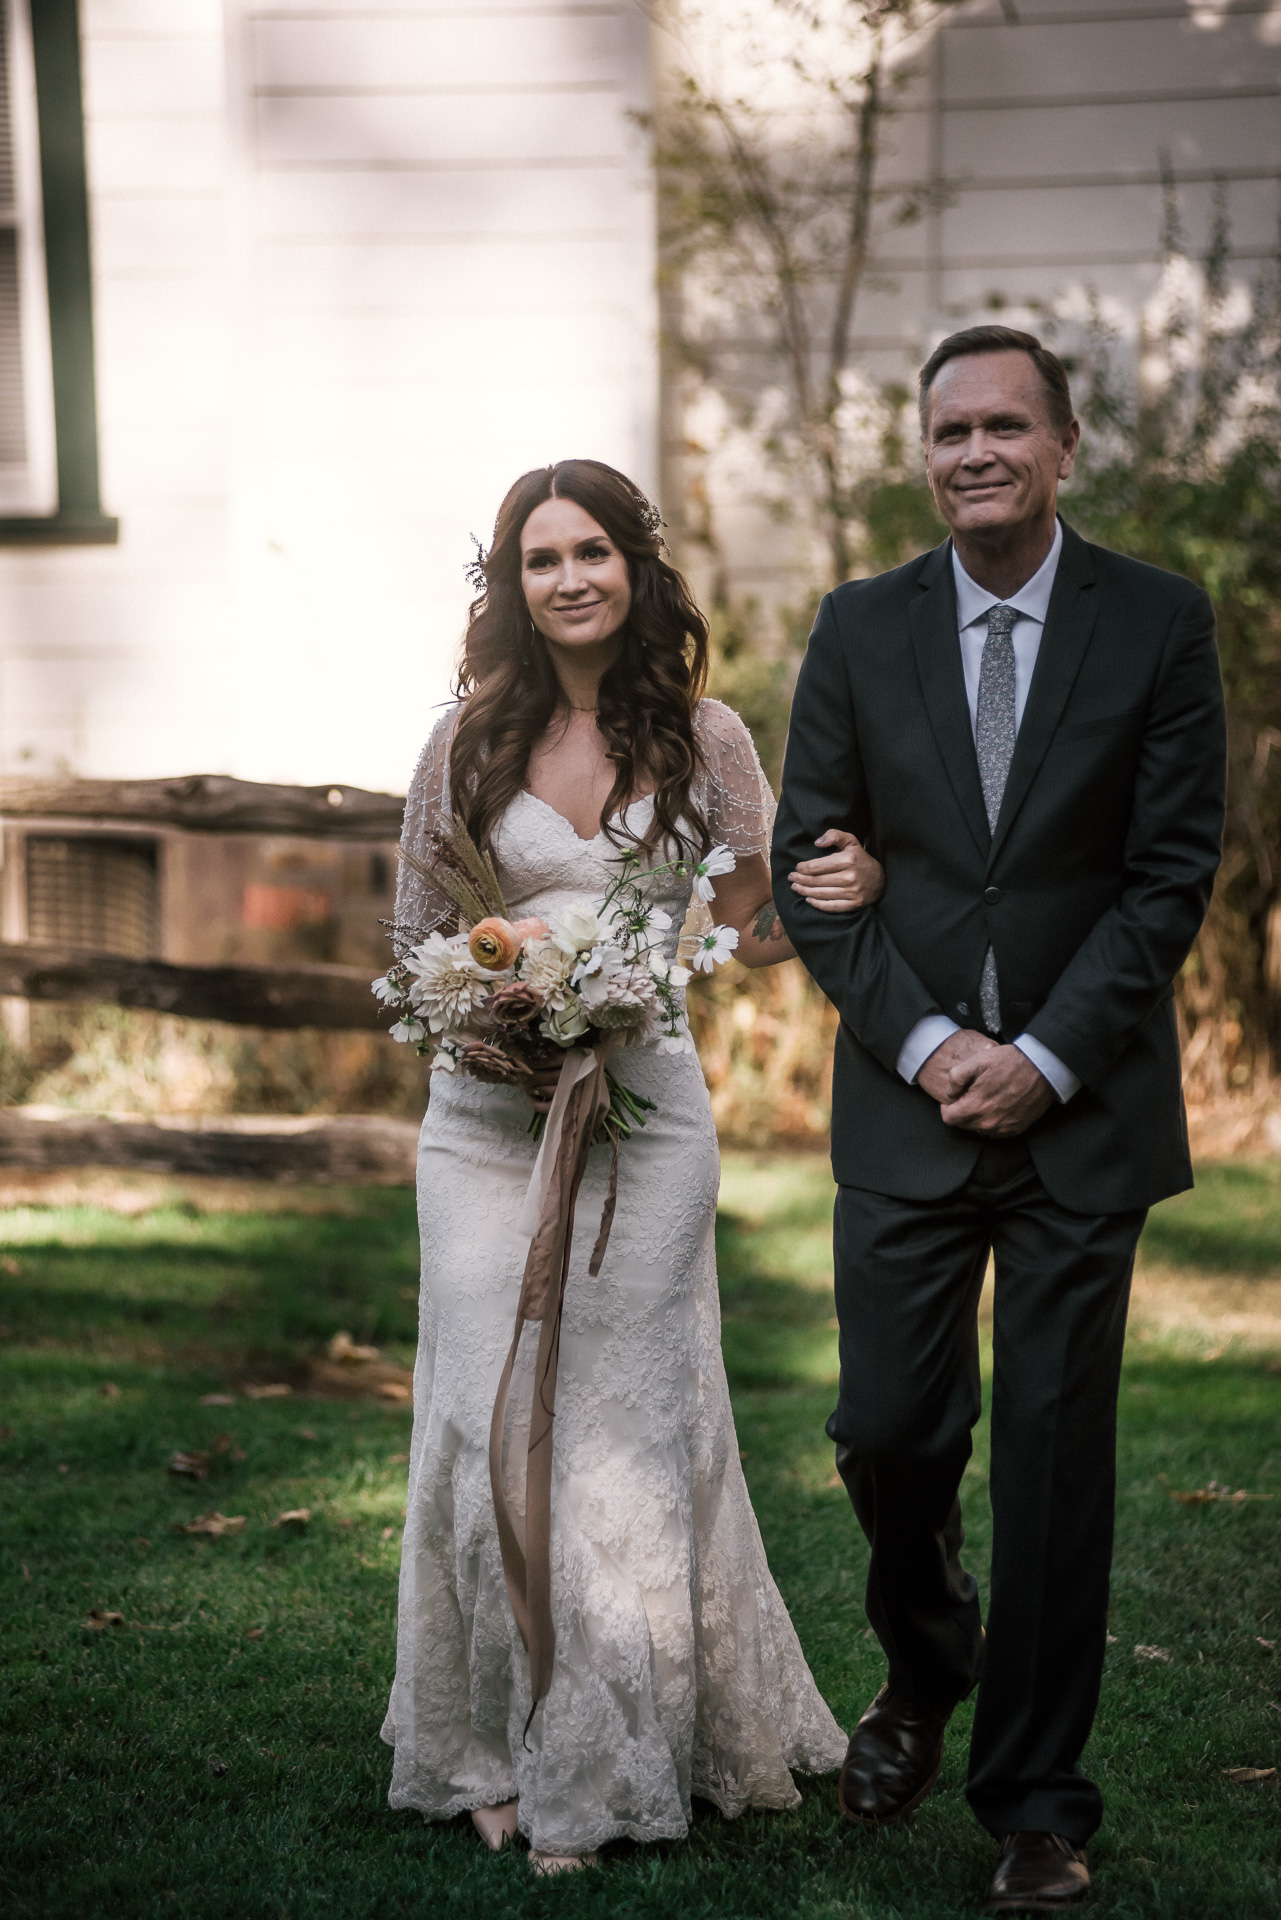 father and daughter head to wedding ceremony shot by wedding photographer at the charming St. George Hotel in Volcano California